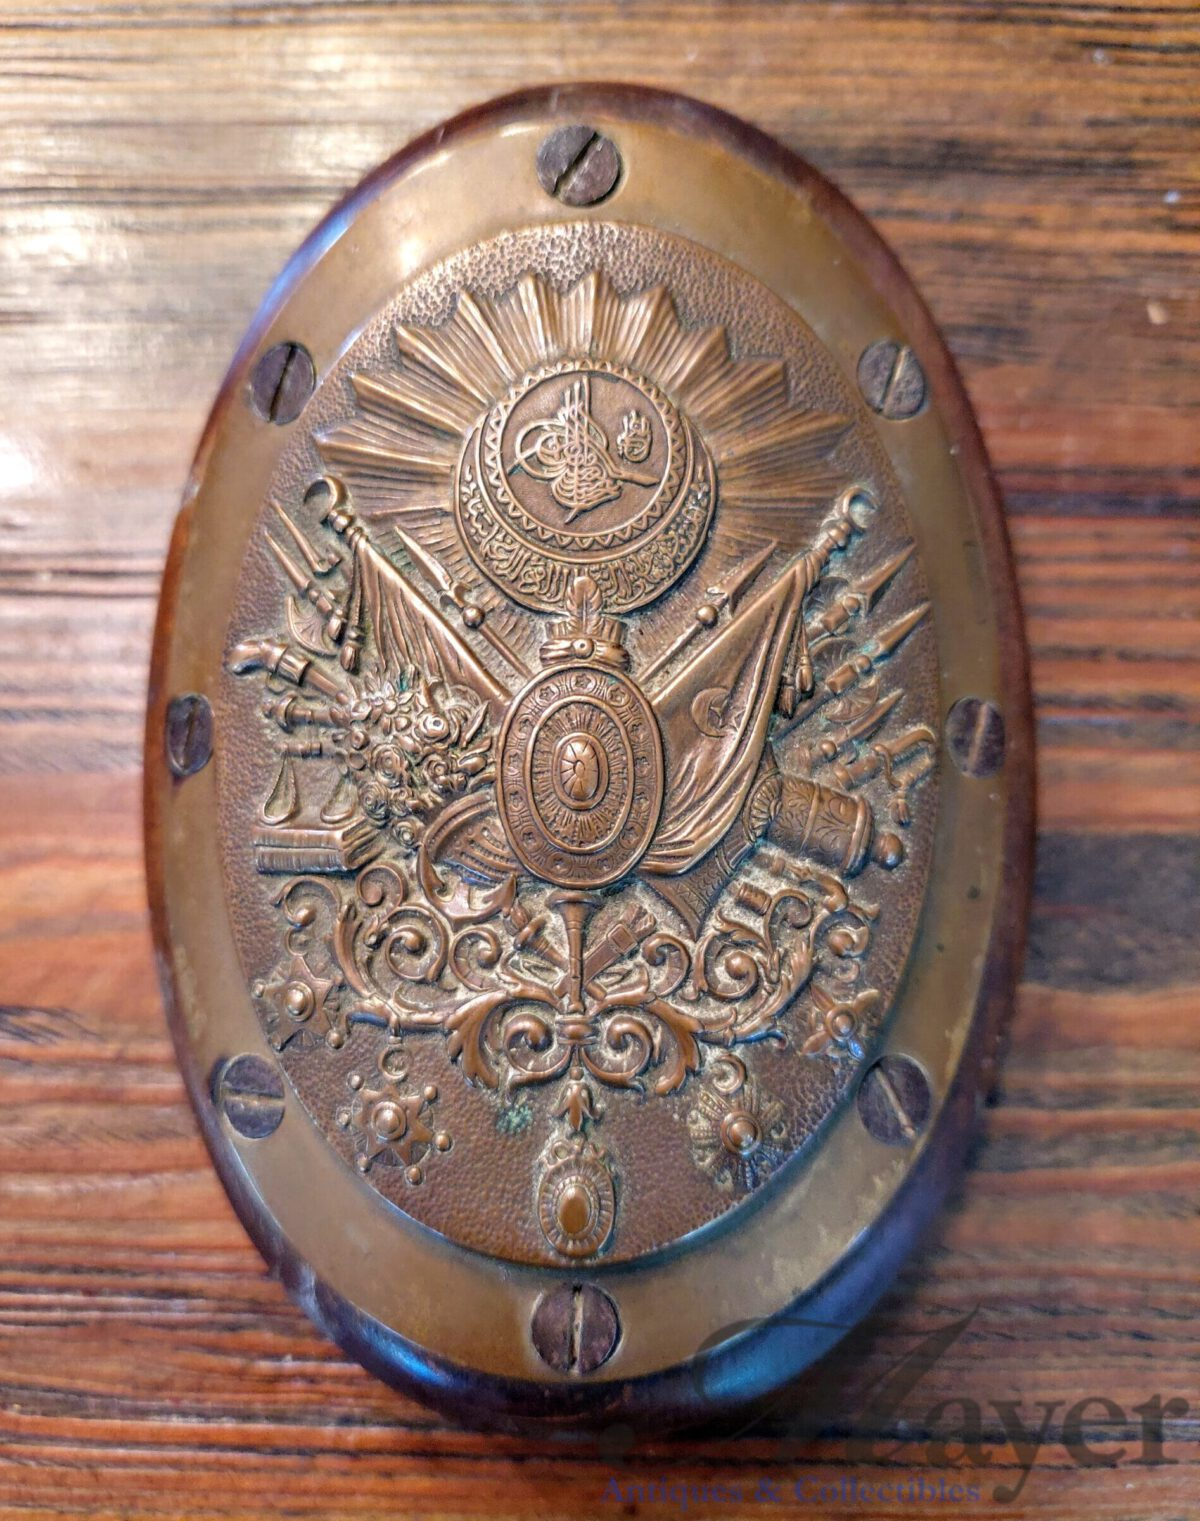 Ottoman Artillery Cannon Brass Coat of Arms Crest